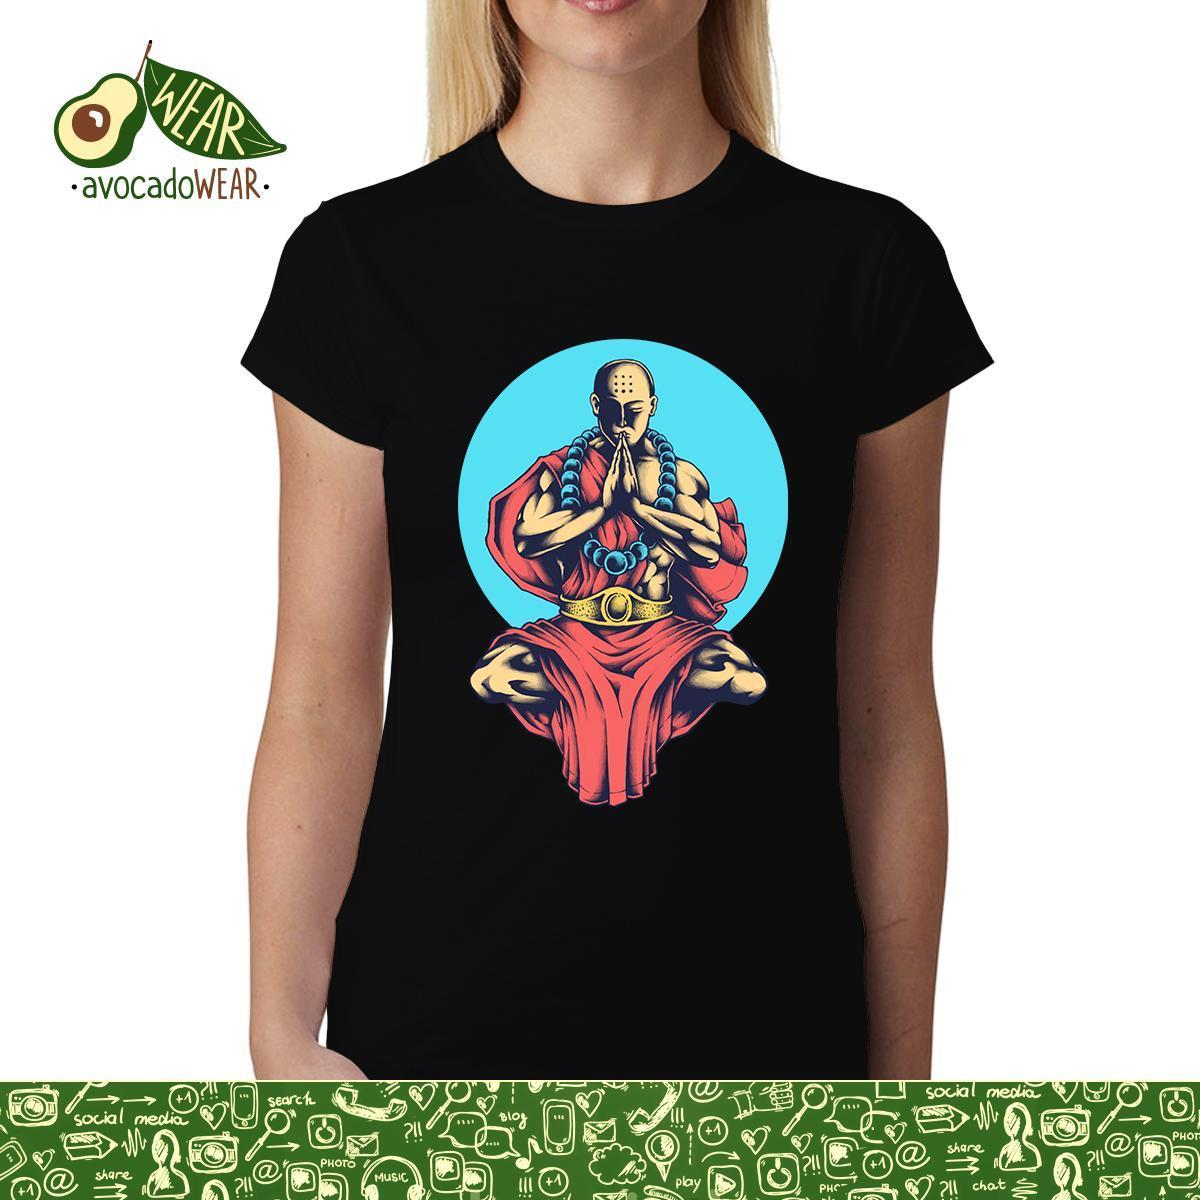 Monk Meditation Peace Womens mens T-shirt S-3XL T Shirts Funny Tops Tee New Unisex  High Quality Casual Printing